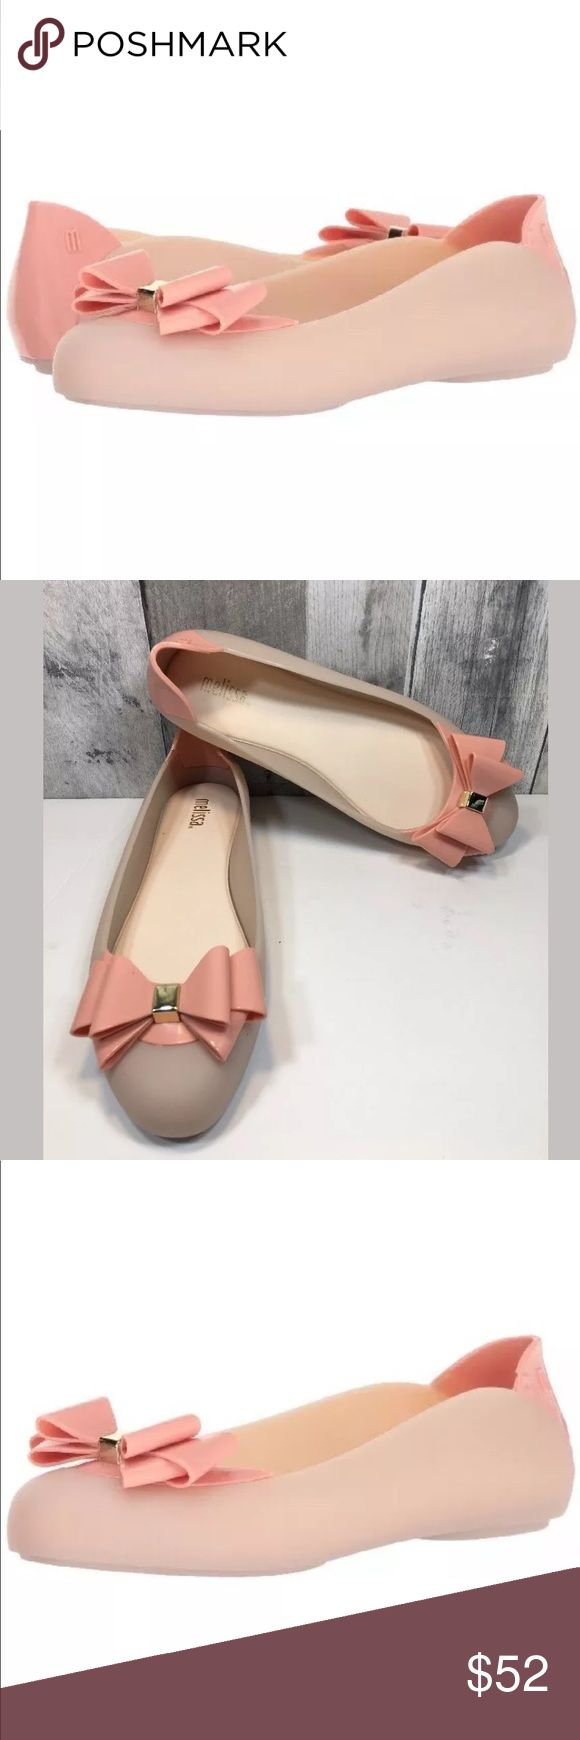 "MELISSA Jelly Bow Shoes Pump It II AD Ballet MELISSA Women's Jelly Bow Flats Shoes Pink & Beige Pump It II AD Ballet Size 8  Shoes are brand new - box does show flaws from being stored and shipped. No flaws to shoes!!  Synthetic - Imported  Heel measures approximately 0.5 inches""  Easy slip-on design. Melissa Shoes Flats & Loafers"